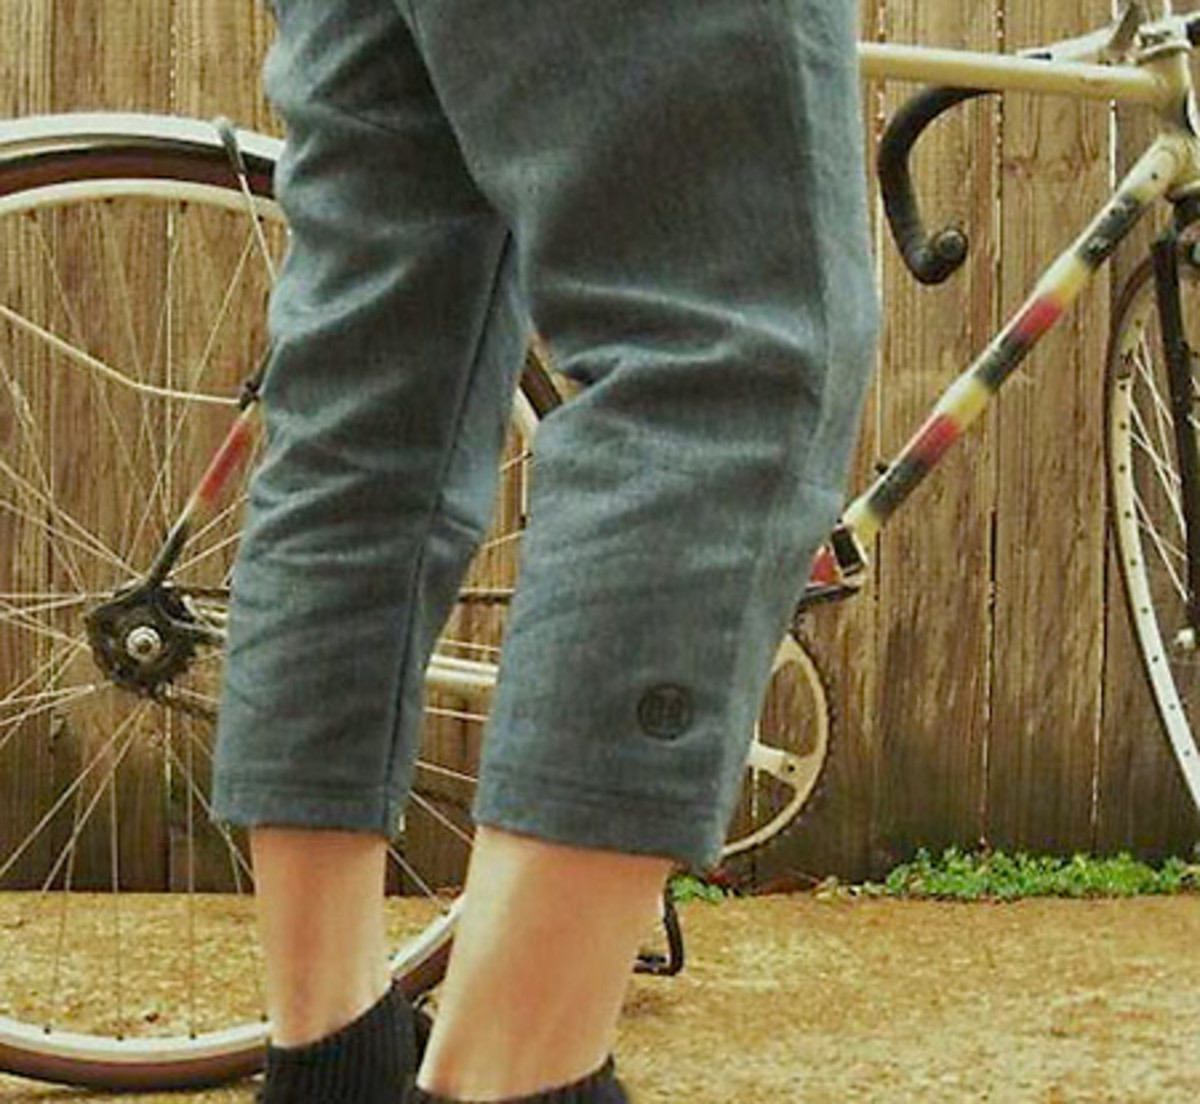 708_cycling_racing_knickers_2